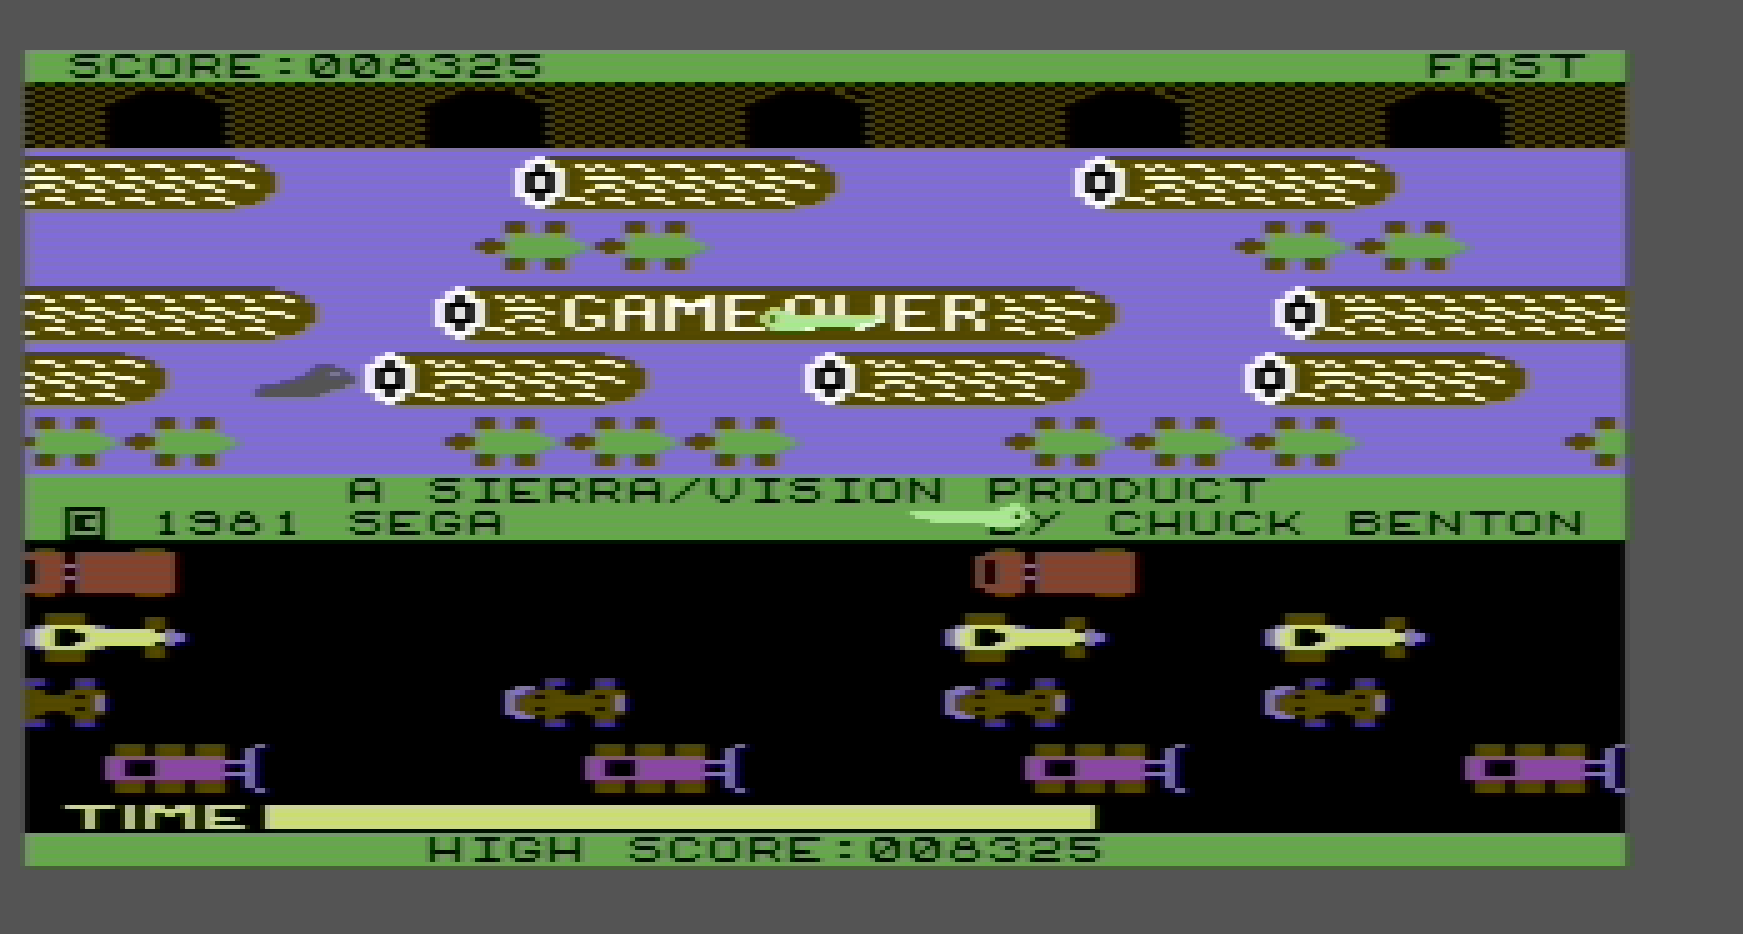 Frogger: Sierra 8,325 points